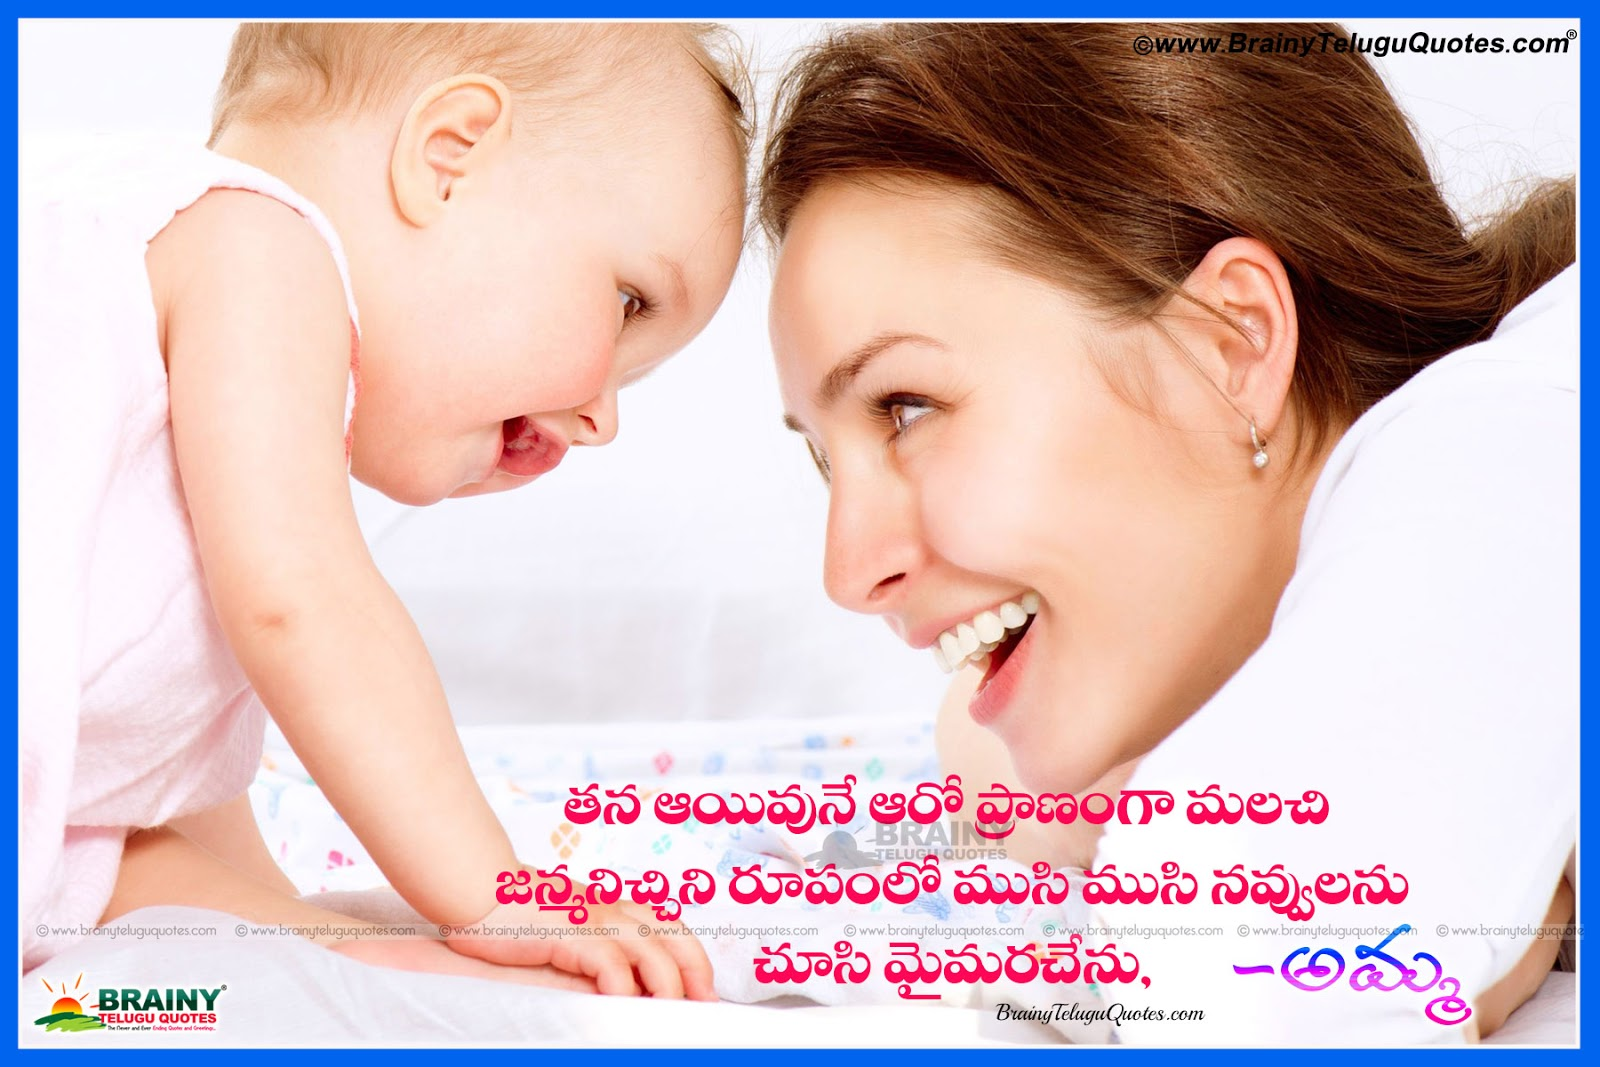 Best Telugu Language Amma Quotations And Images With Healthy Mother And Child 1600x1067 Download Hd Wallpaper Wallpapertip